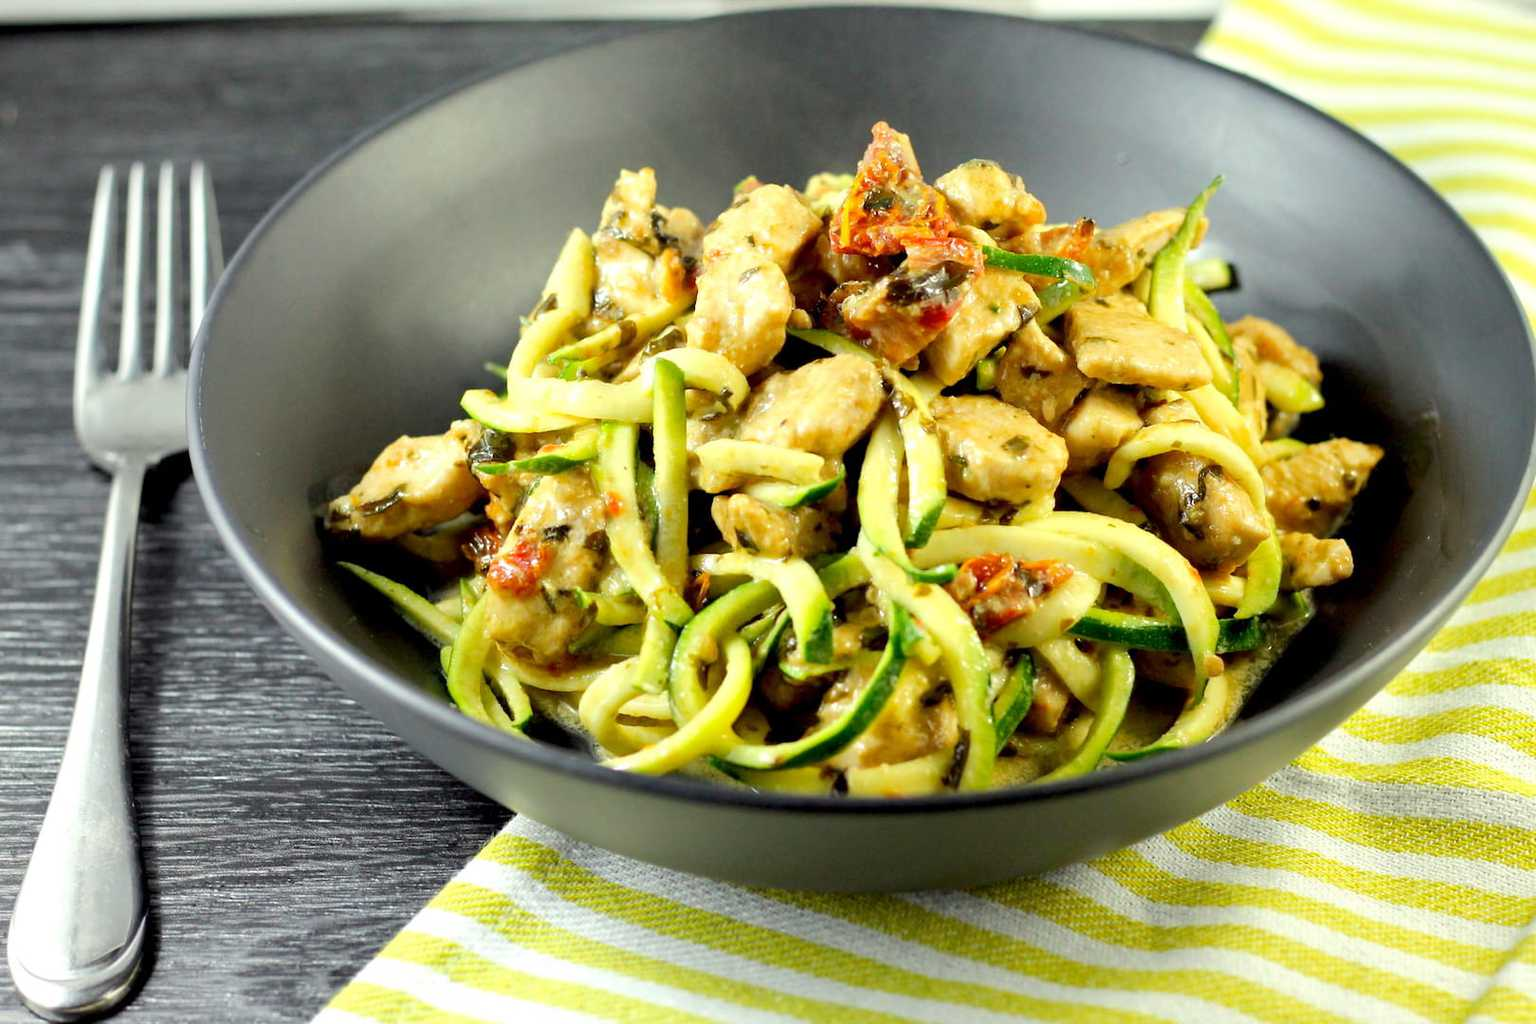 Keto Pesto Chicken with Zucchini Noodles